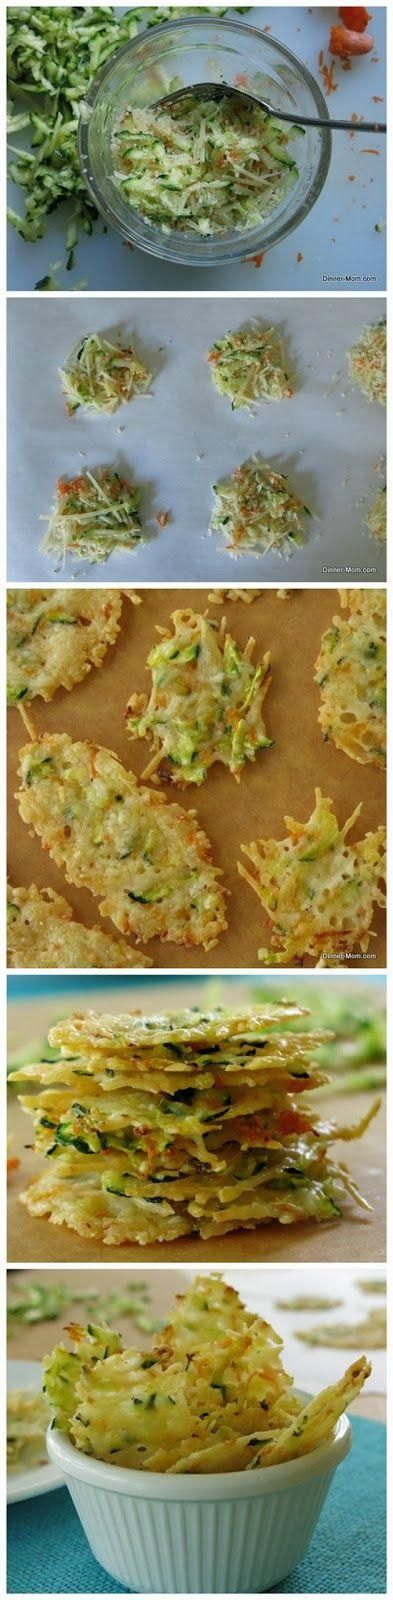 Parmesan Cheese Crisps with Zucchini and Carrots #lowcarb #appetizer